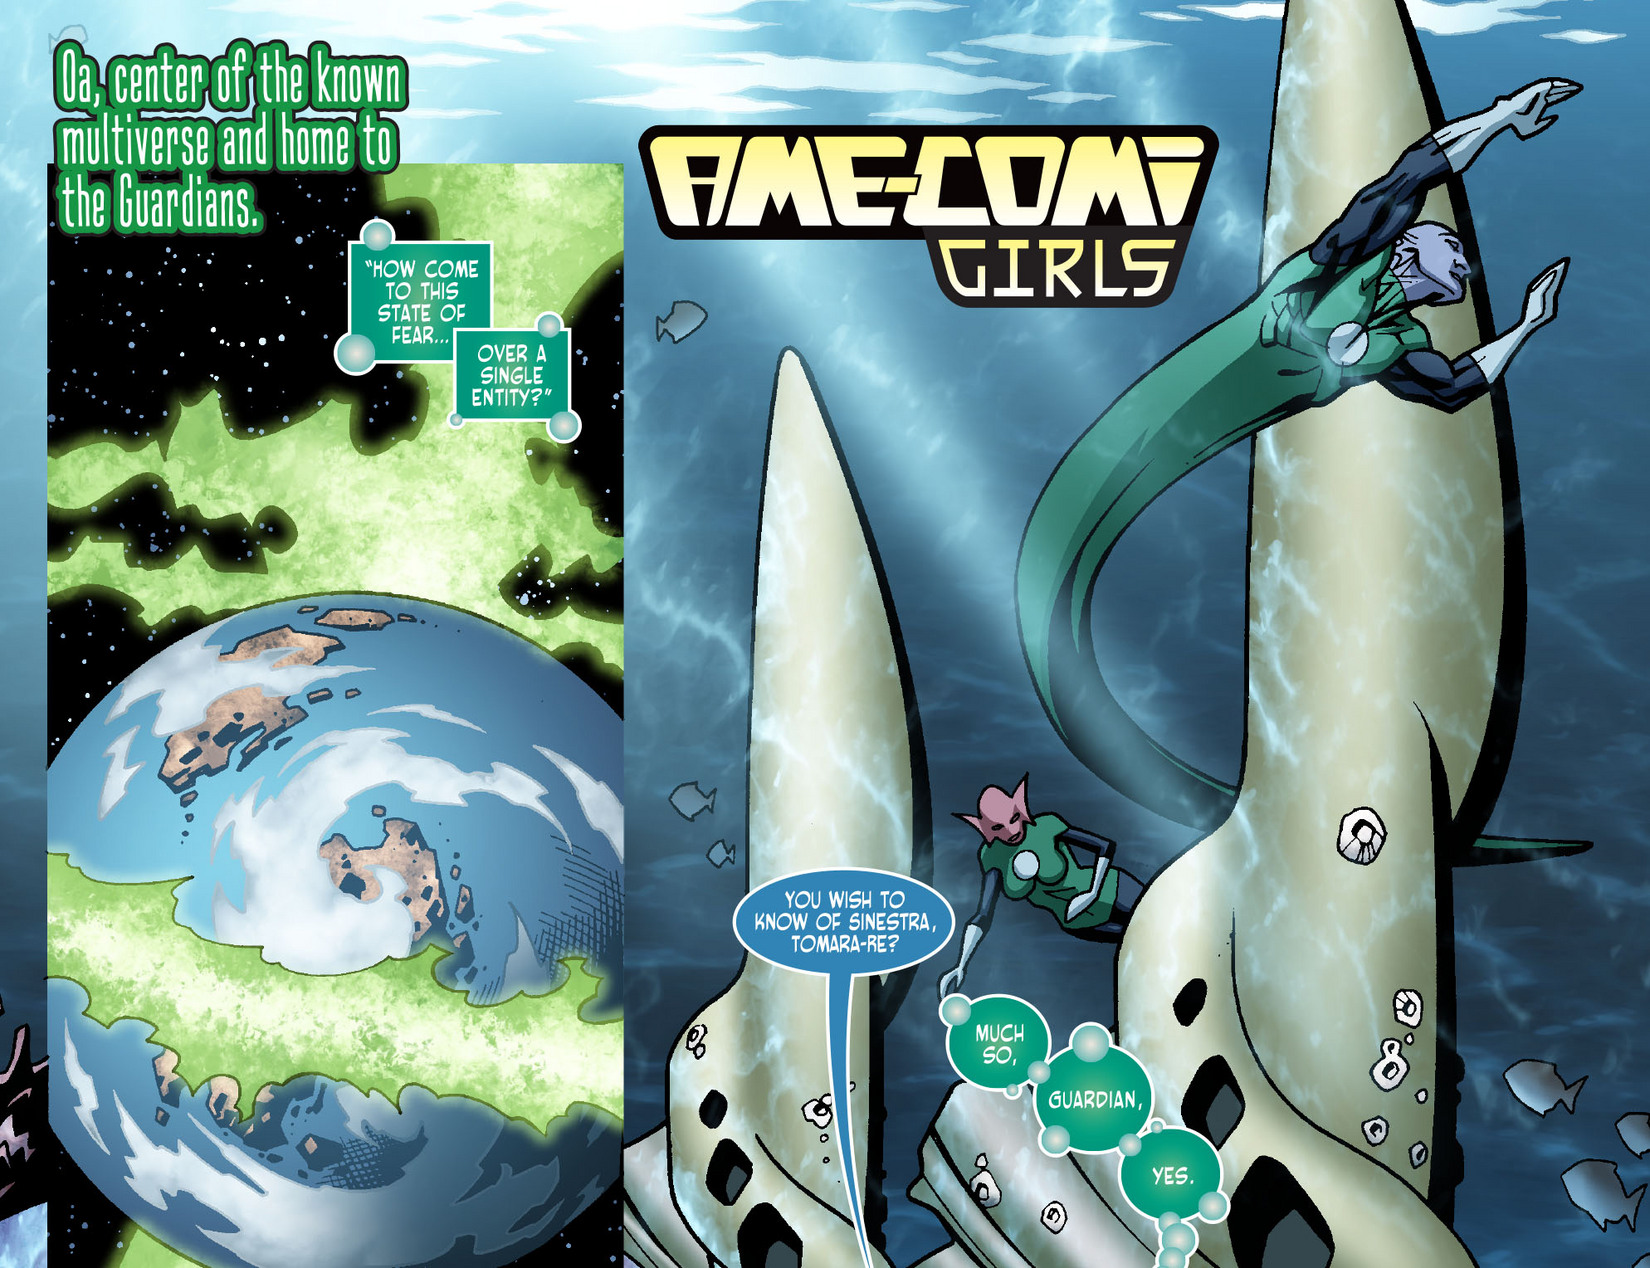 Read online Ame-Comi Girls comic -  Issue #12 - 3